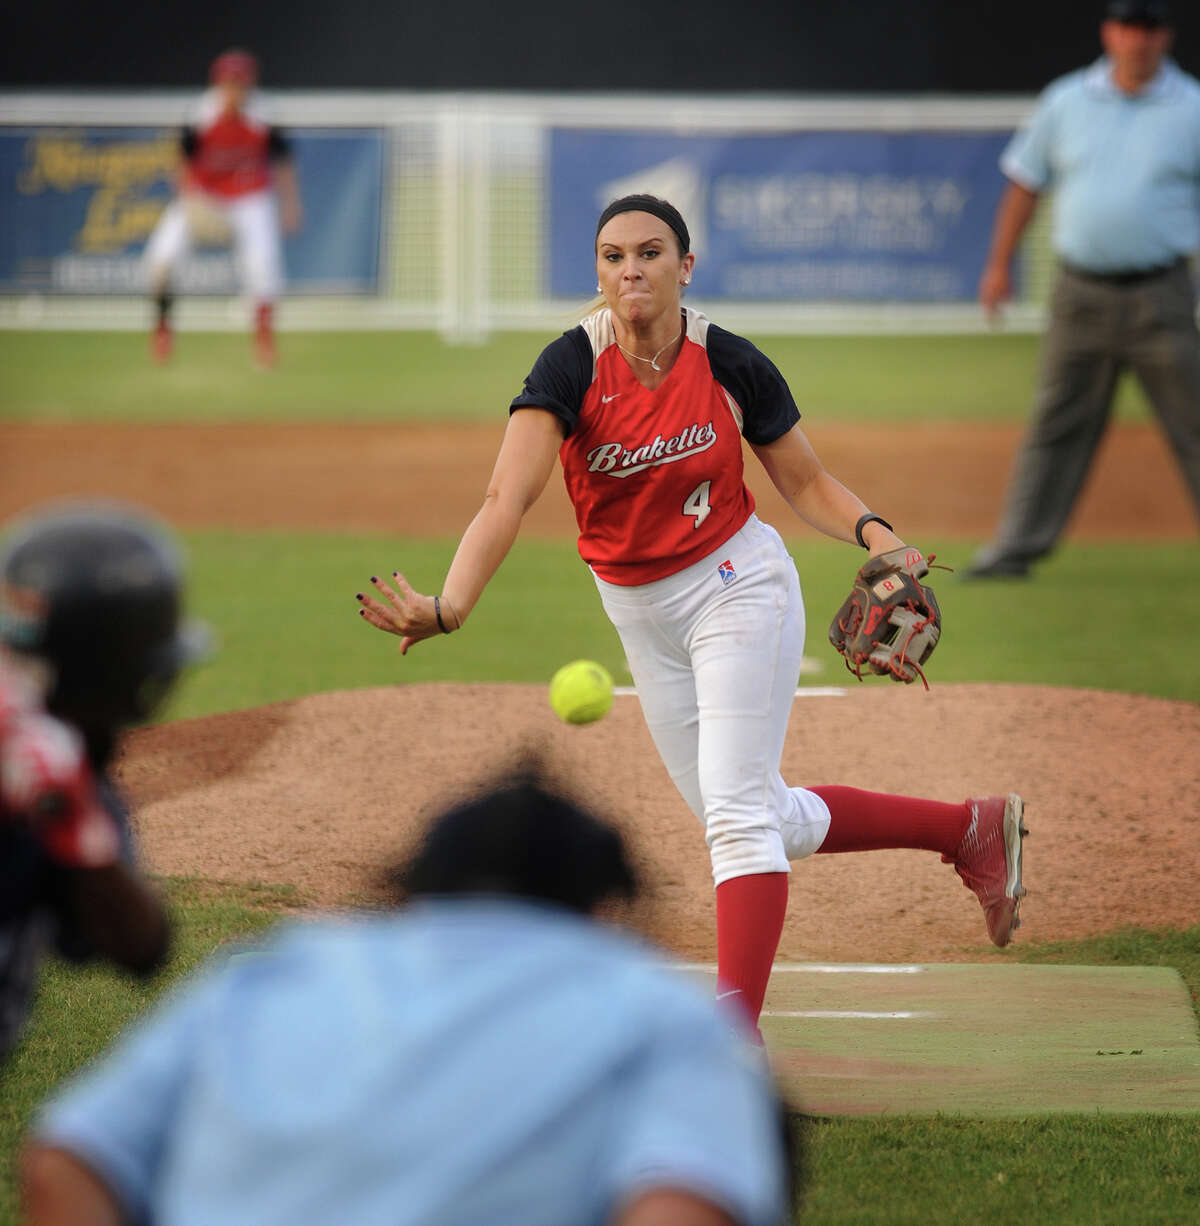 Stratford Brakettes pitcher Tatum Buckley delivers to the plate during her team's annual game against the Bridgeport Bluefish Sunday at the Ballpark at Harbor Yard in Bridgeport.